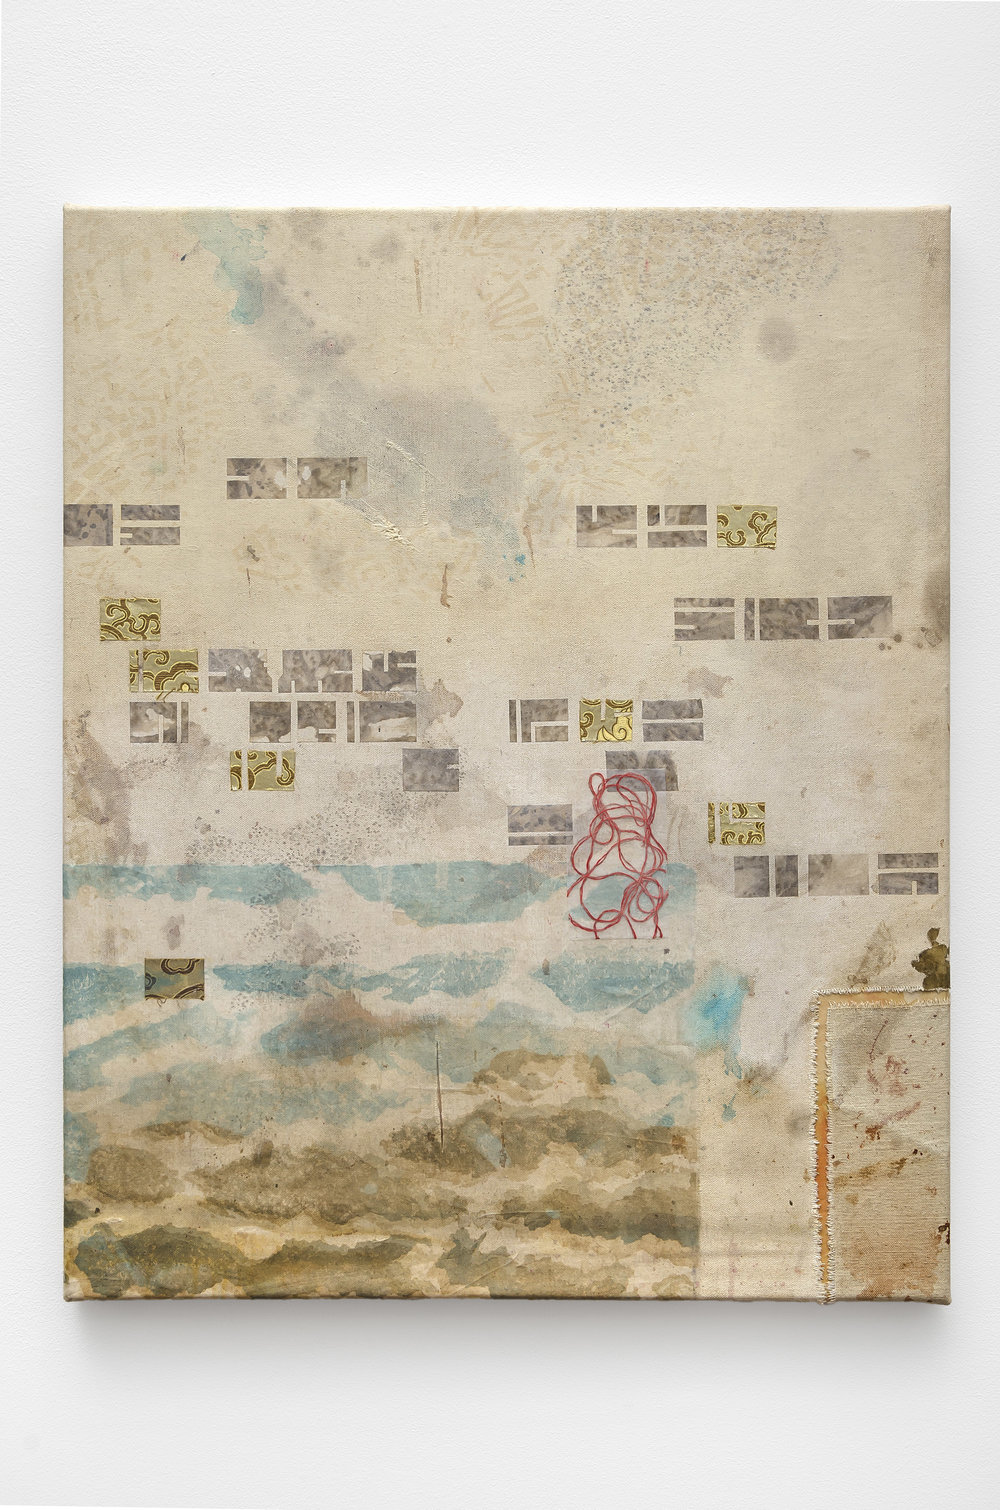 Victoria May,   Navigation of sorts , 2018, found canvas with screen printing, found fabrics, organza and ink, 30 x 24 inches